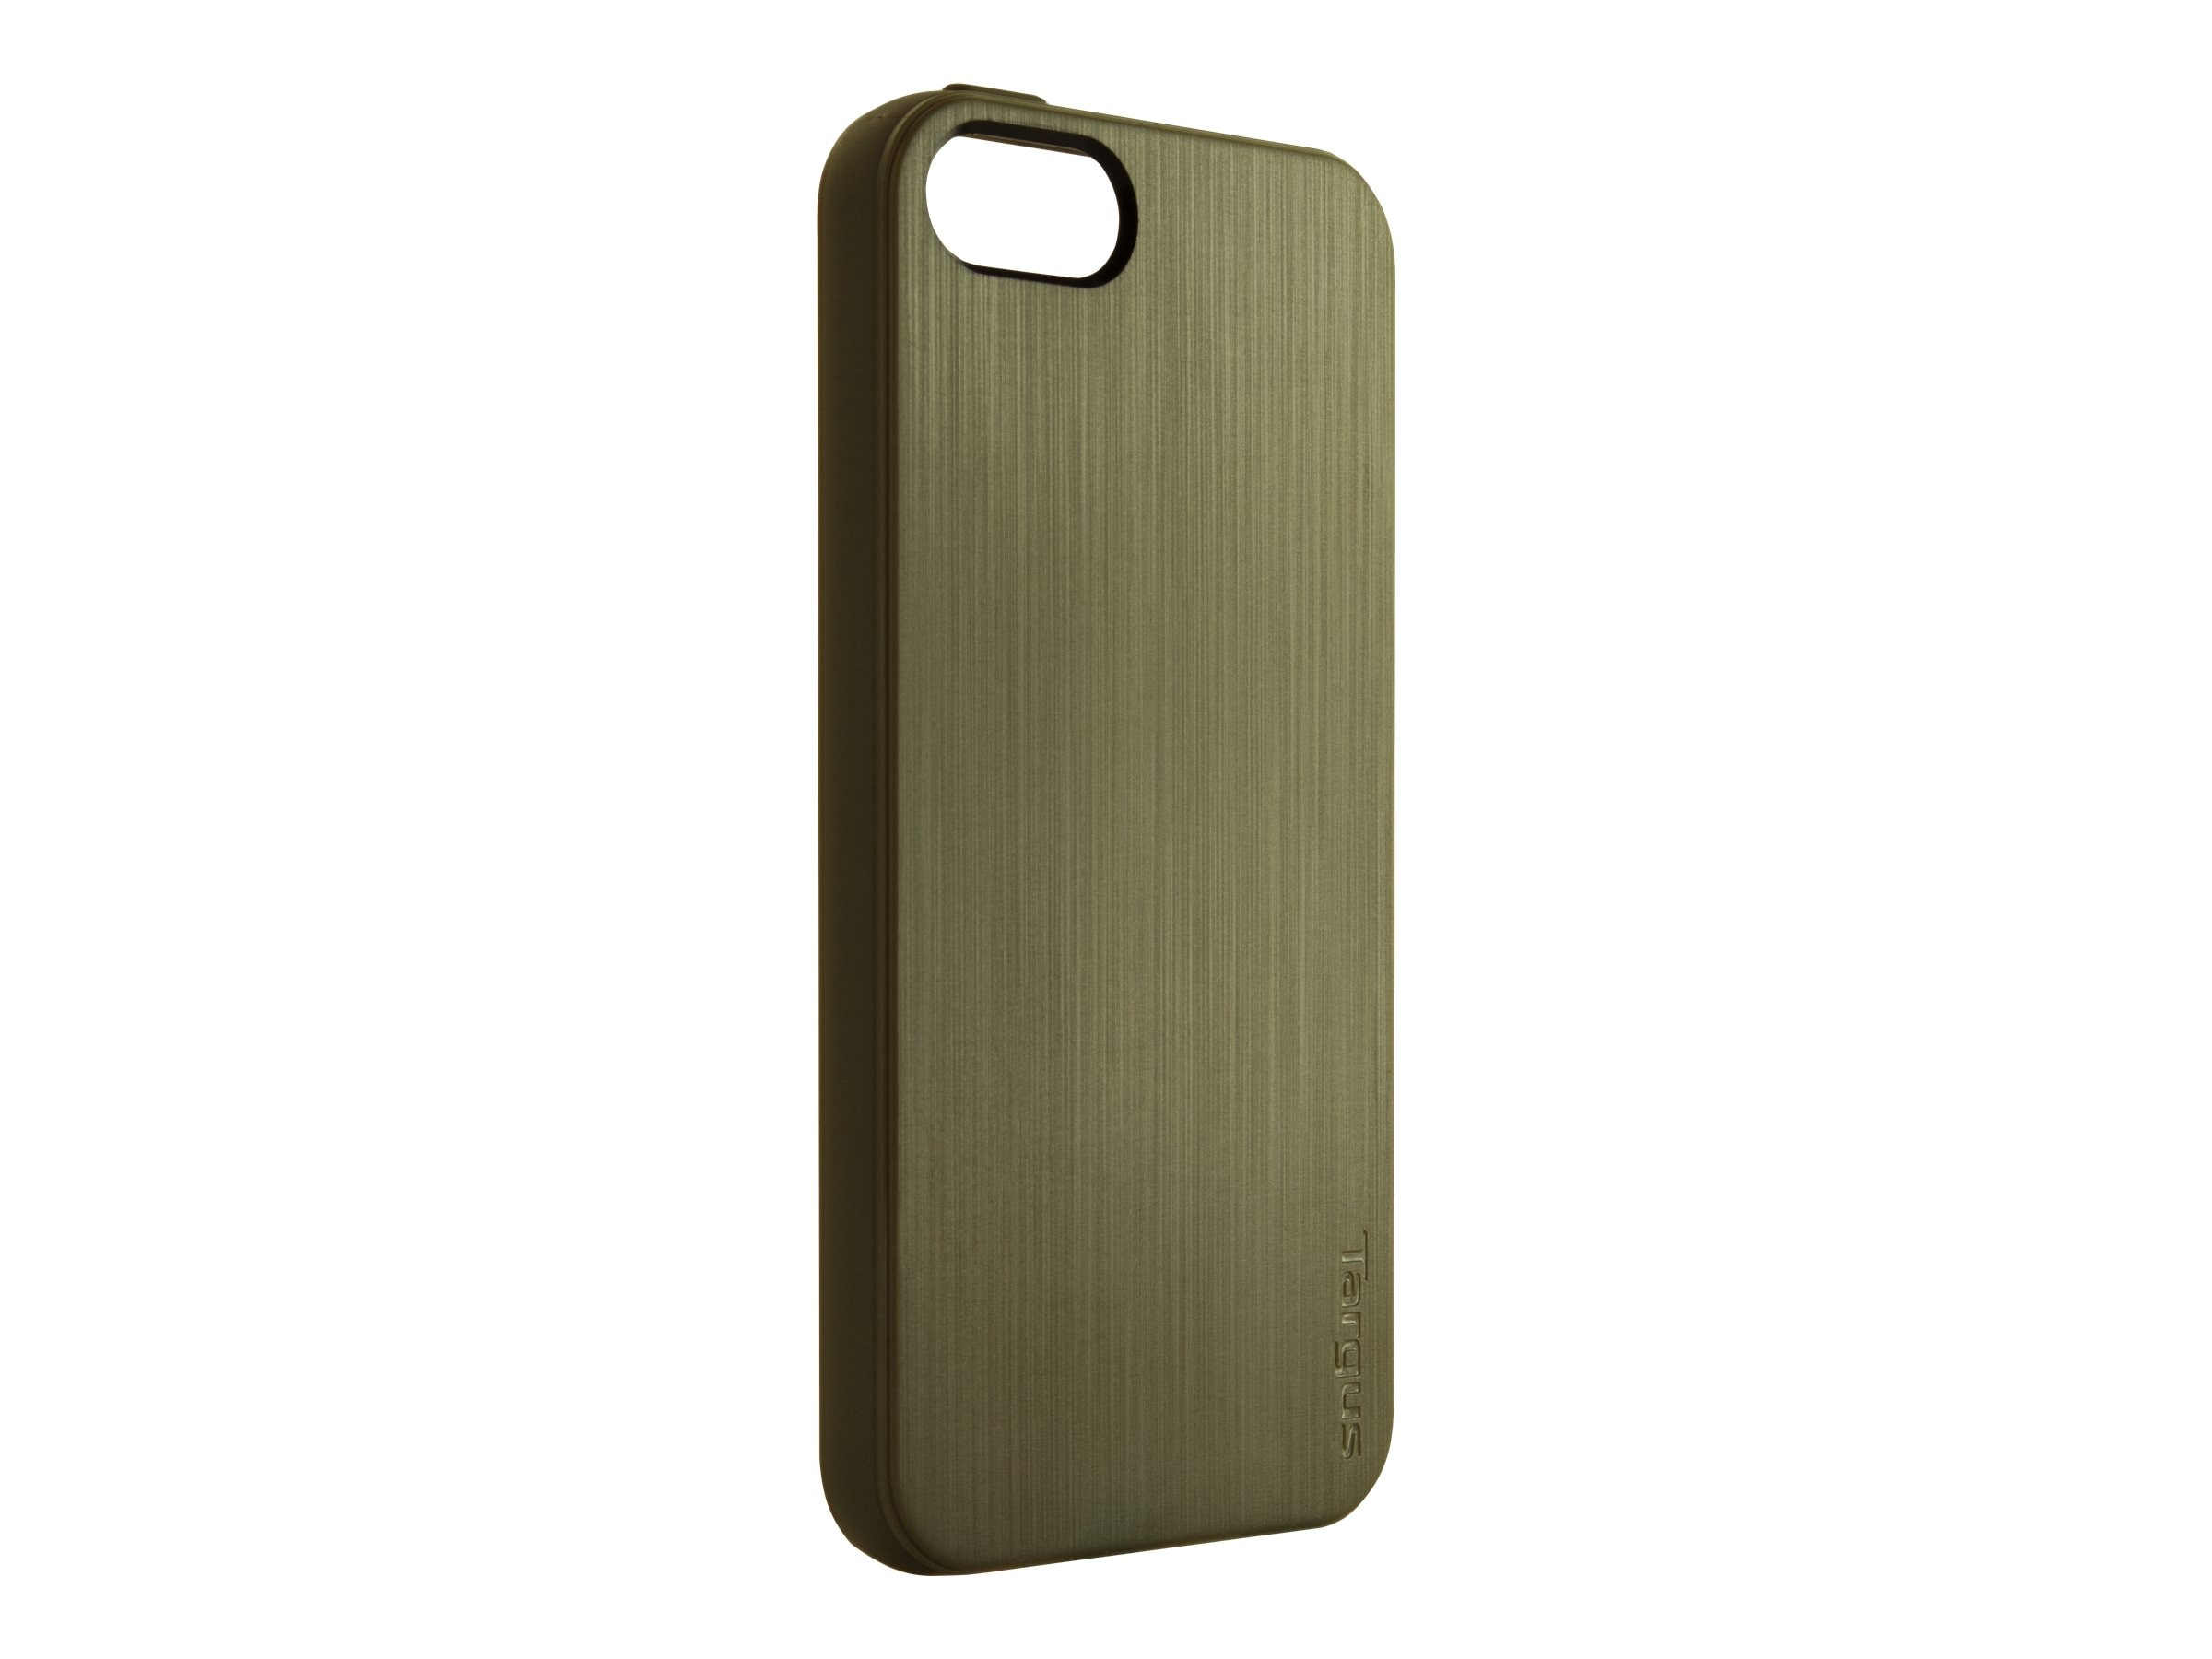 Targus Slim-Fit Back Cover for iPhone 5, Green